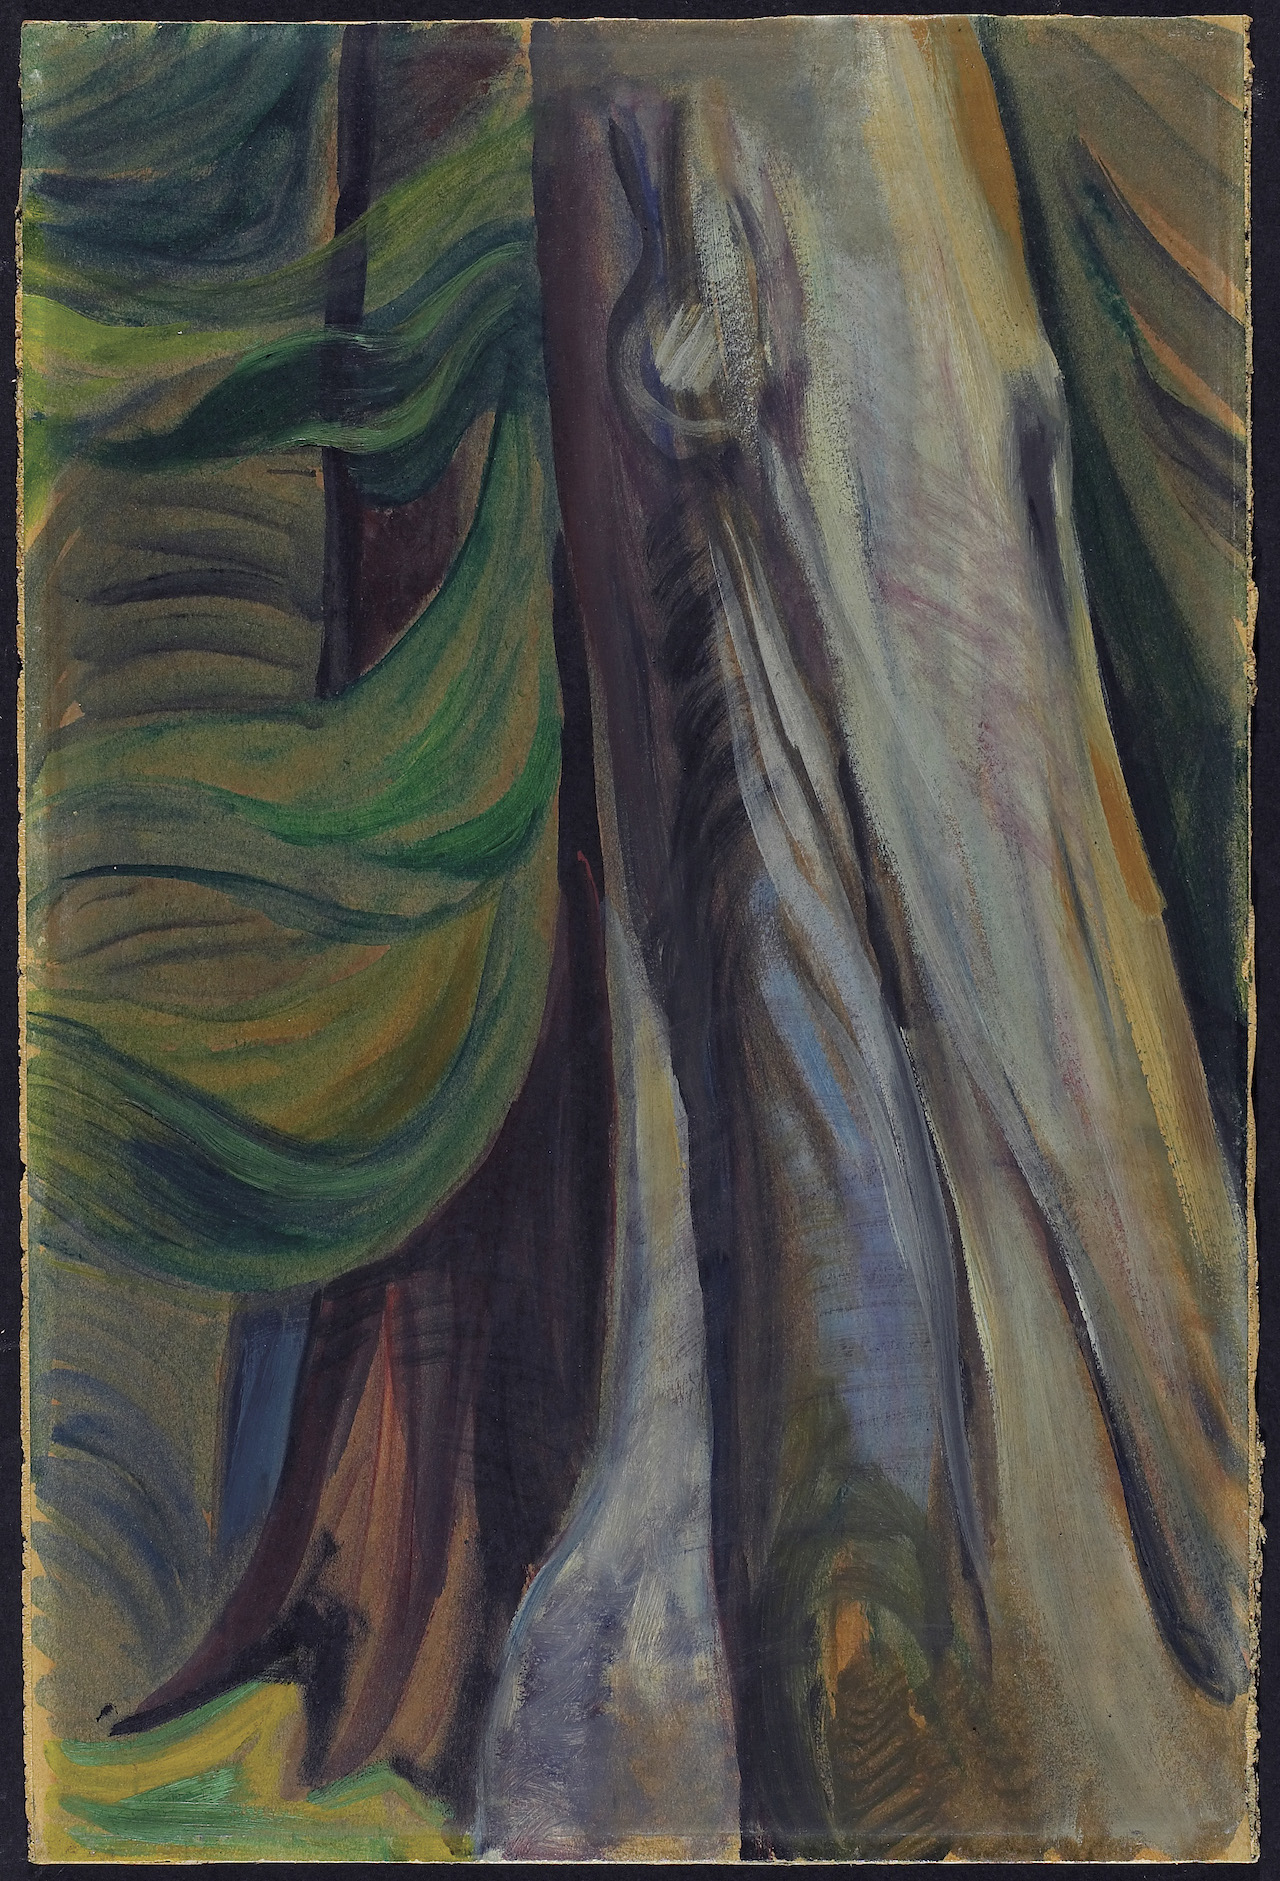 """Emily Carr, """"In the Forest, B.C."""" (1935), oil on paper, mounted on multi-ply paperboard, overall: 45.8 x 30.2 cm (courtesy the Art Gallery of Ontario, bequest of Professor Kathleen Coburn, 2004)"""